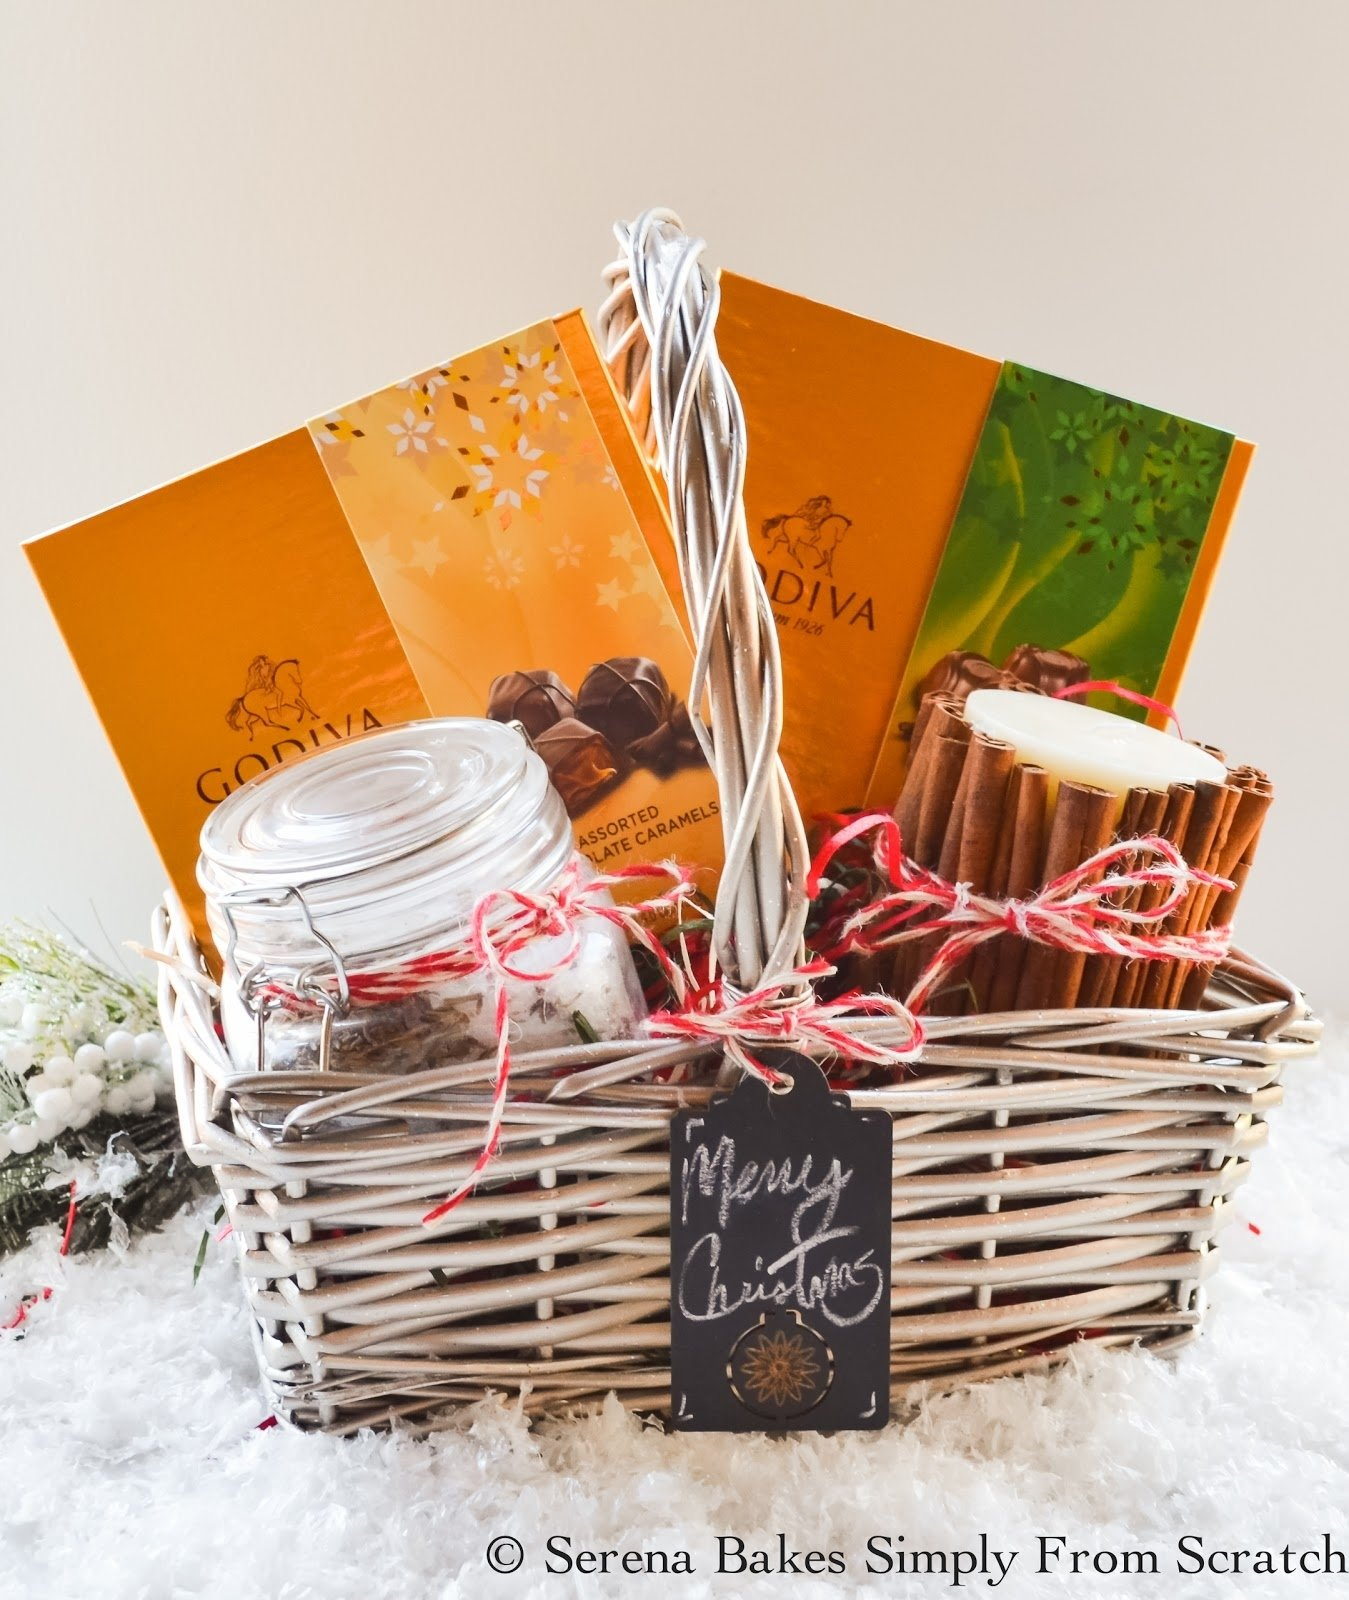 10 Great Homemade Holiday Gift Basket Ideas holiday gift basket ideas serena bakes simply from scratch 2